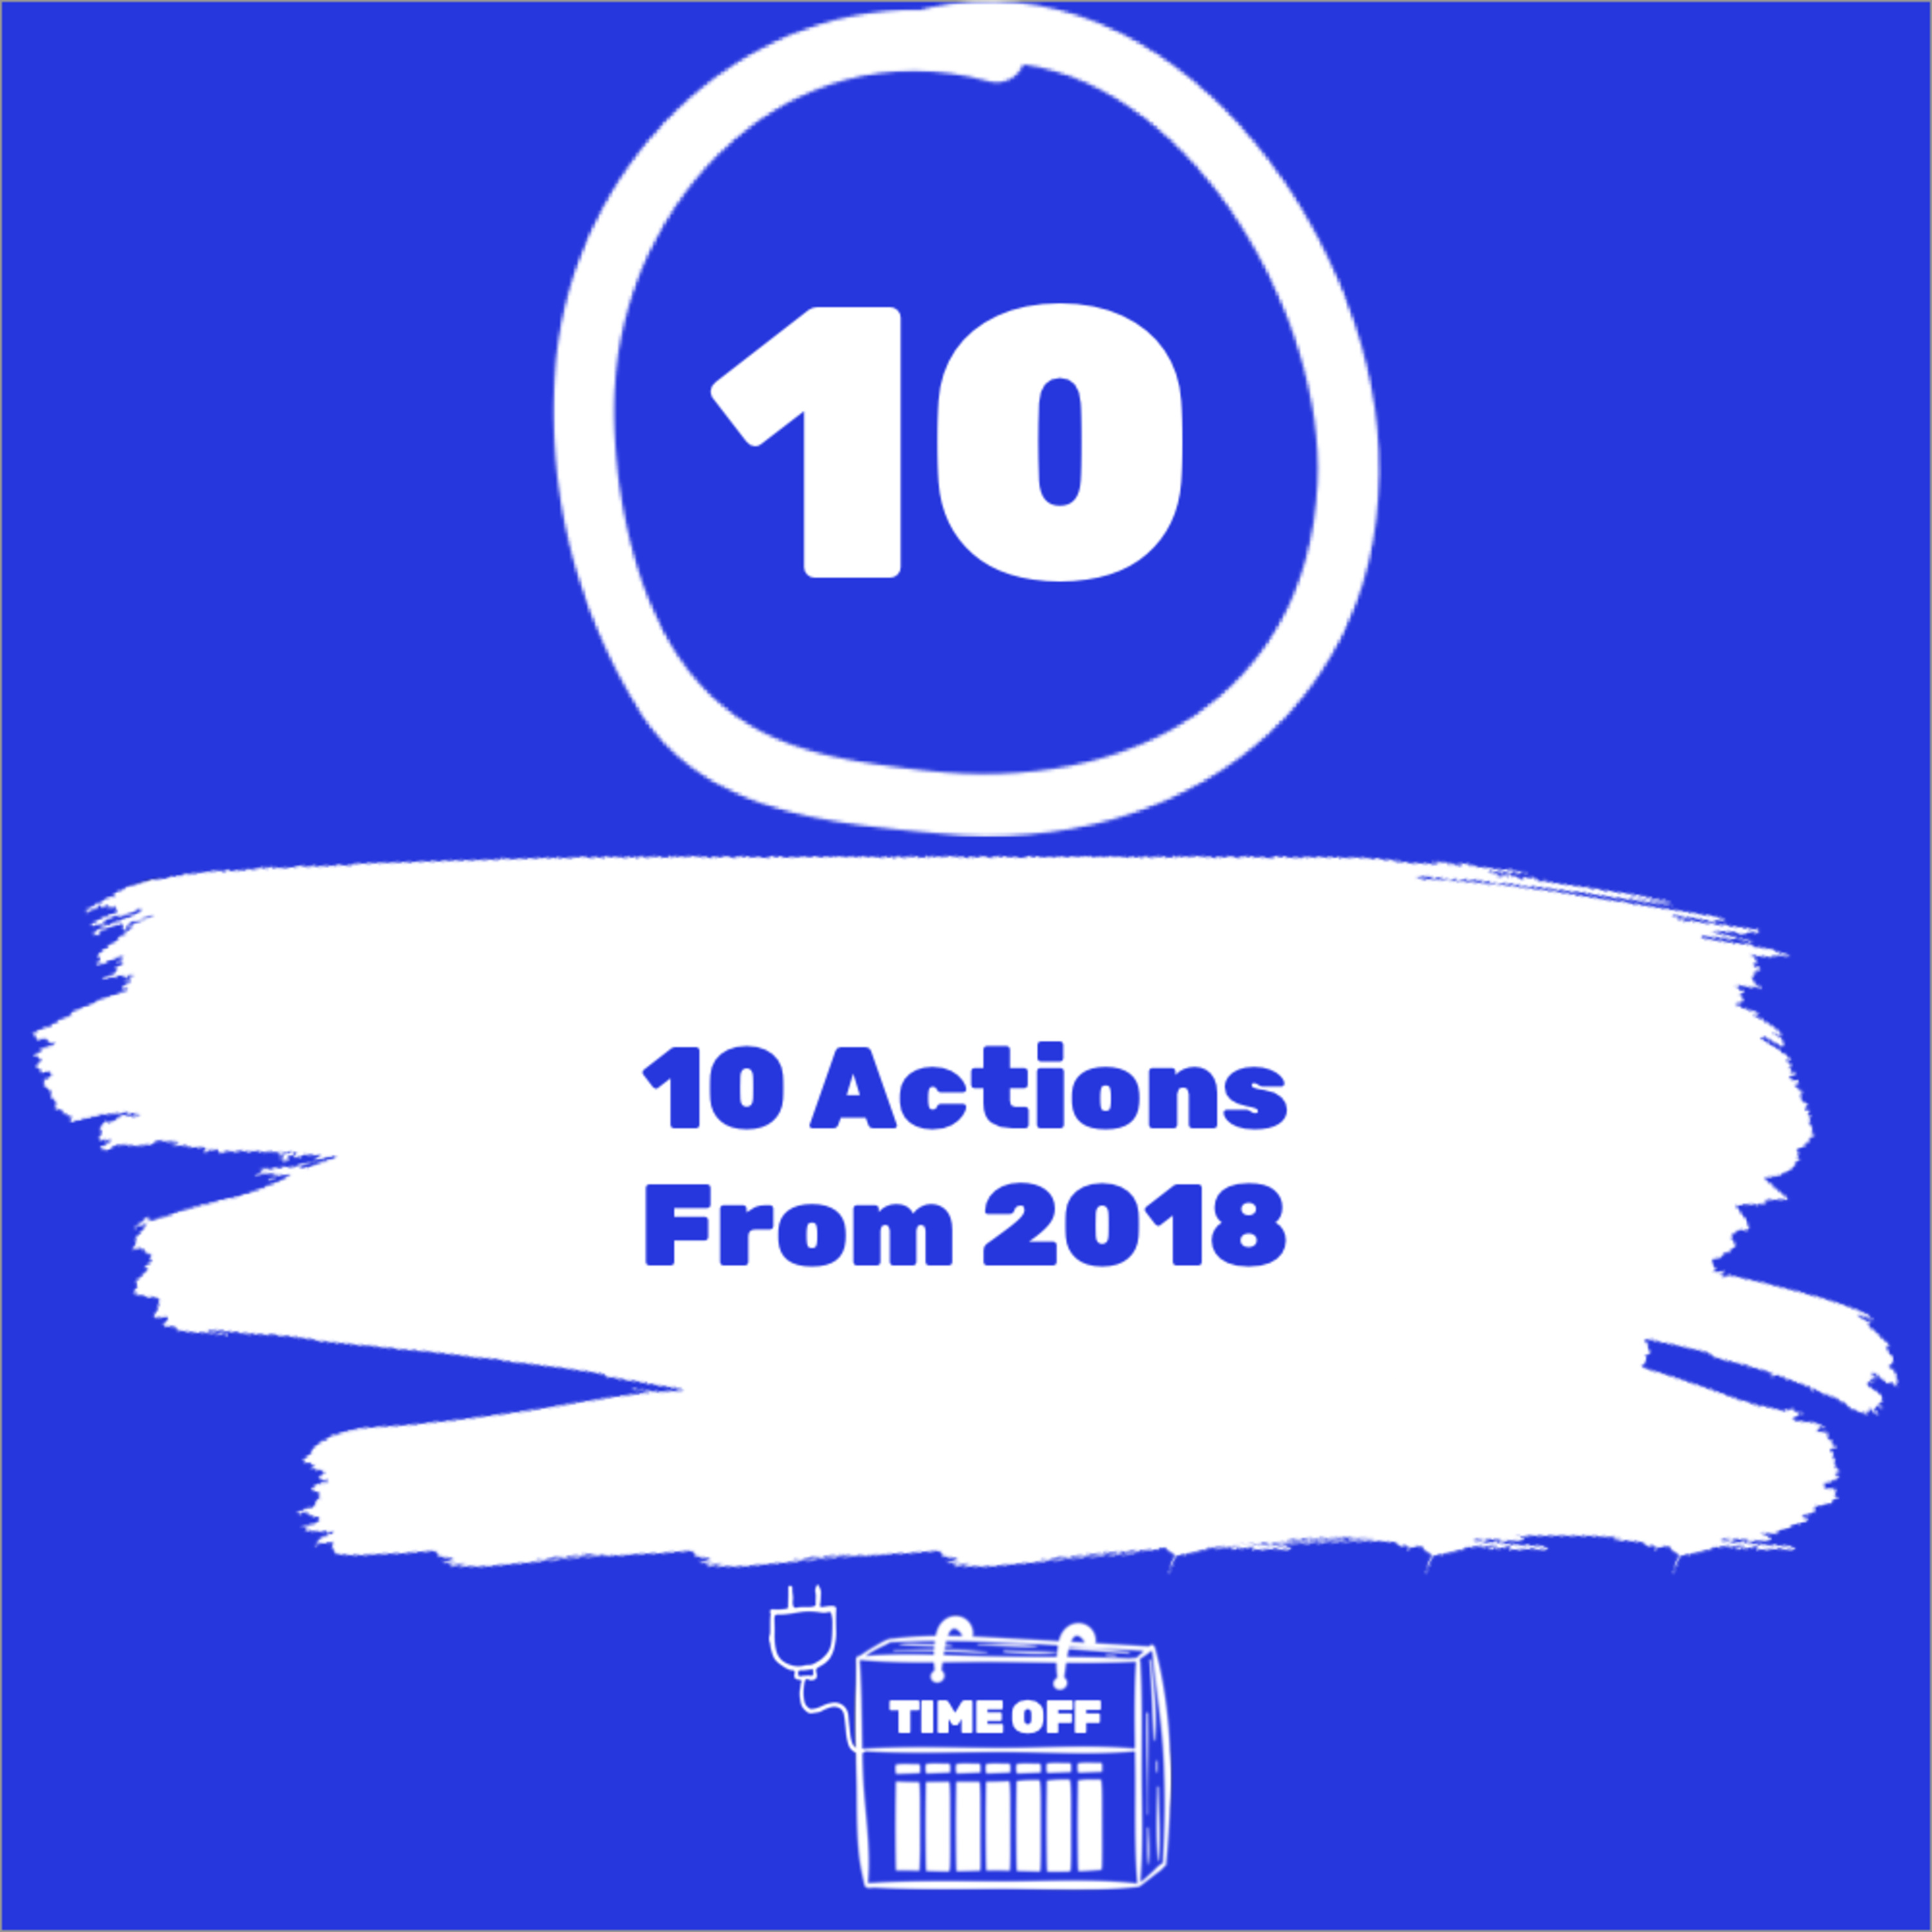 10 Actions From 2018